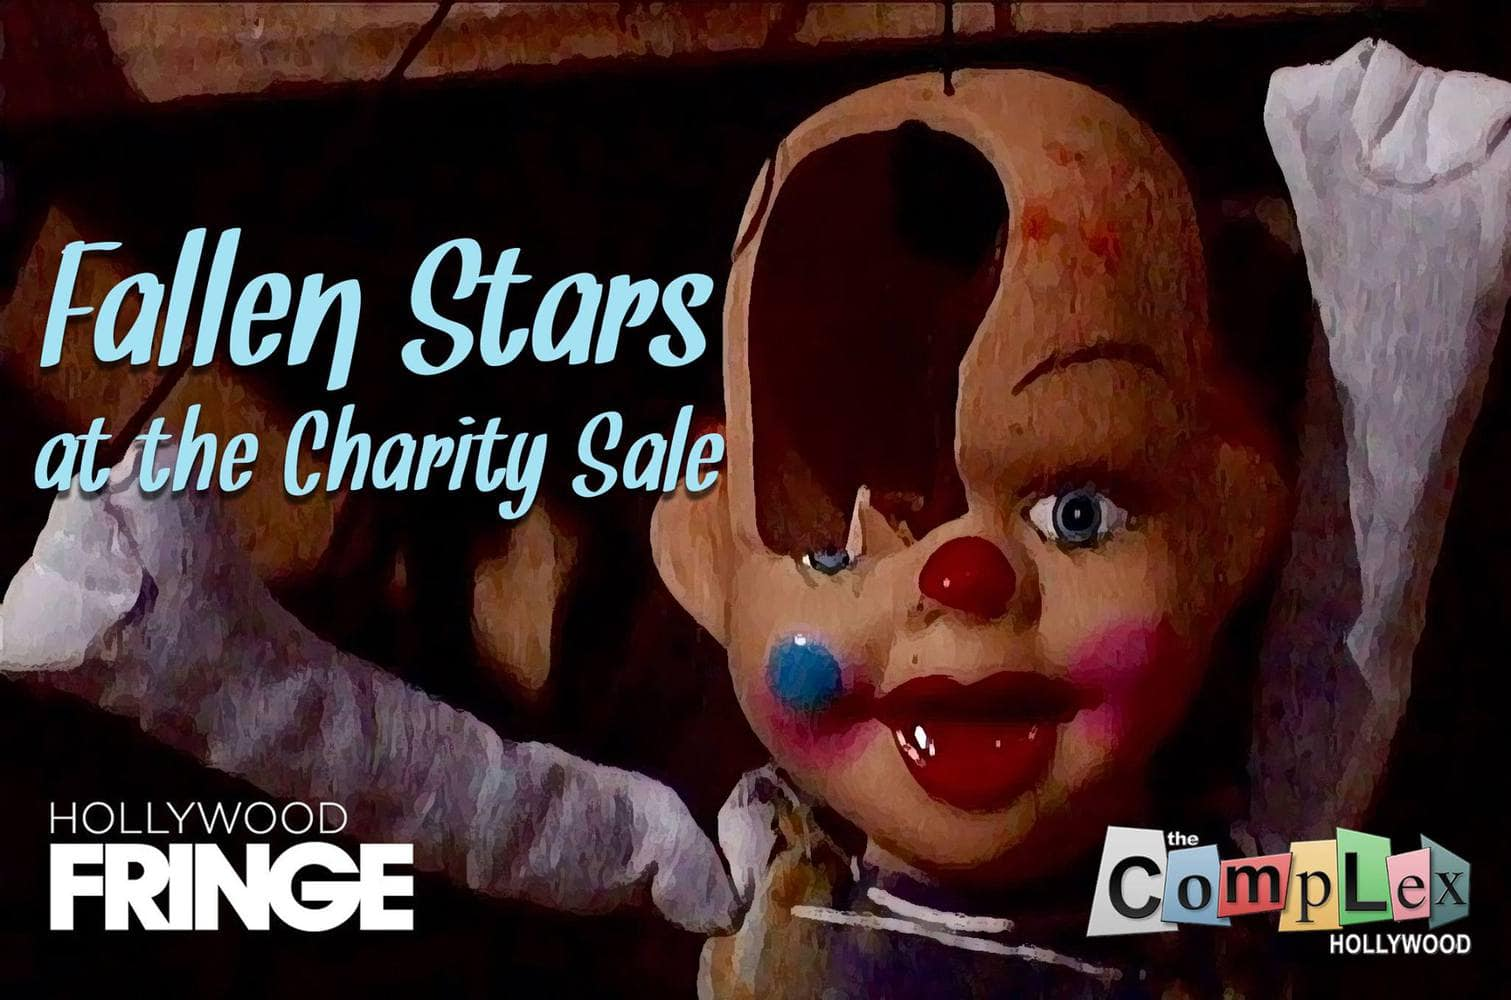 Fallen Stars Charity Sale Hollywood Fringe LA Theater Theatre LARP live action roleplay